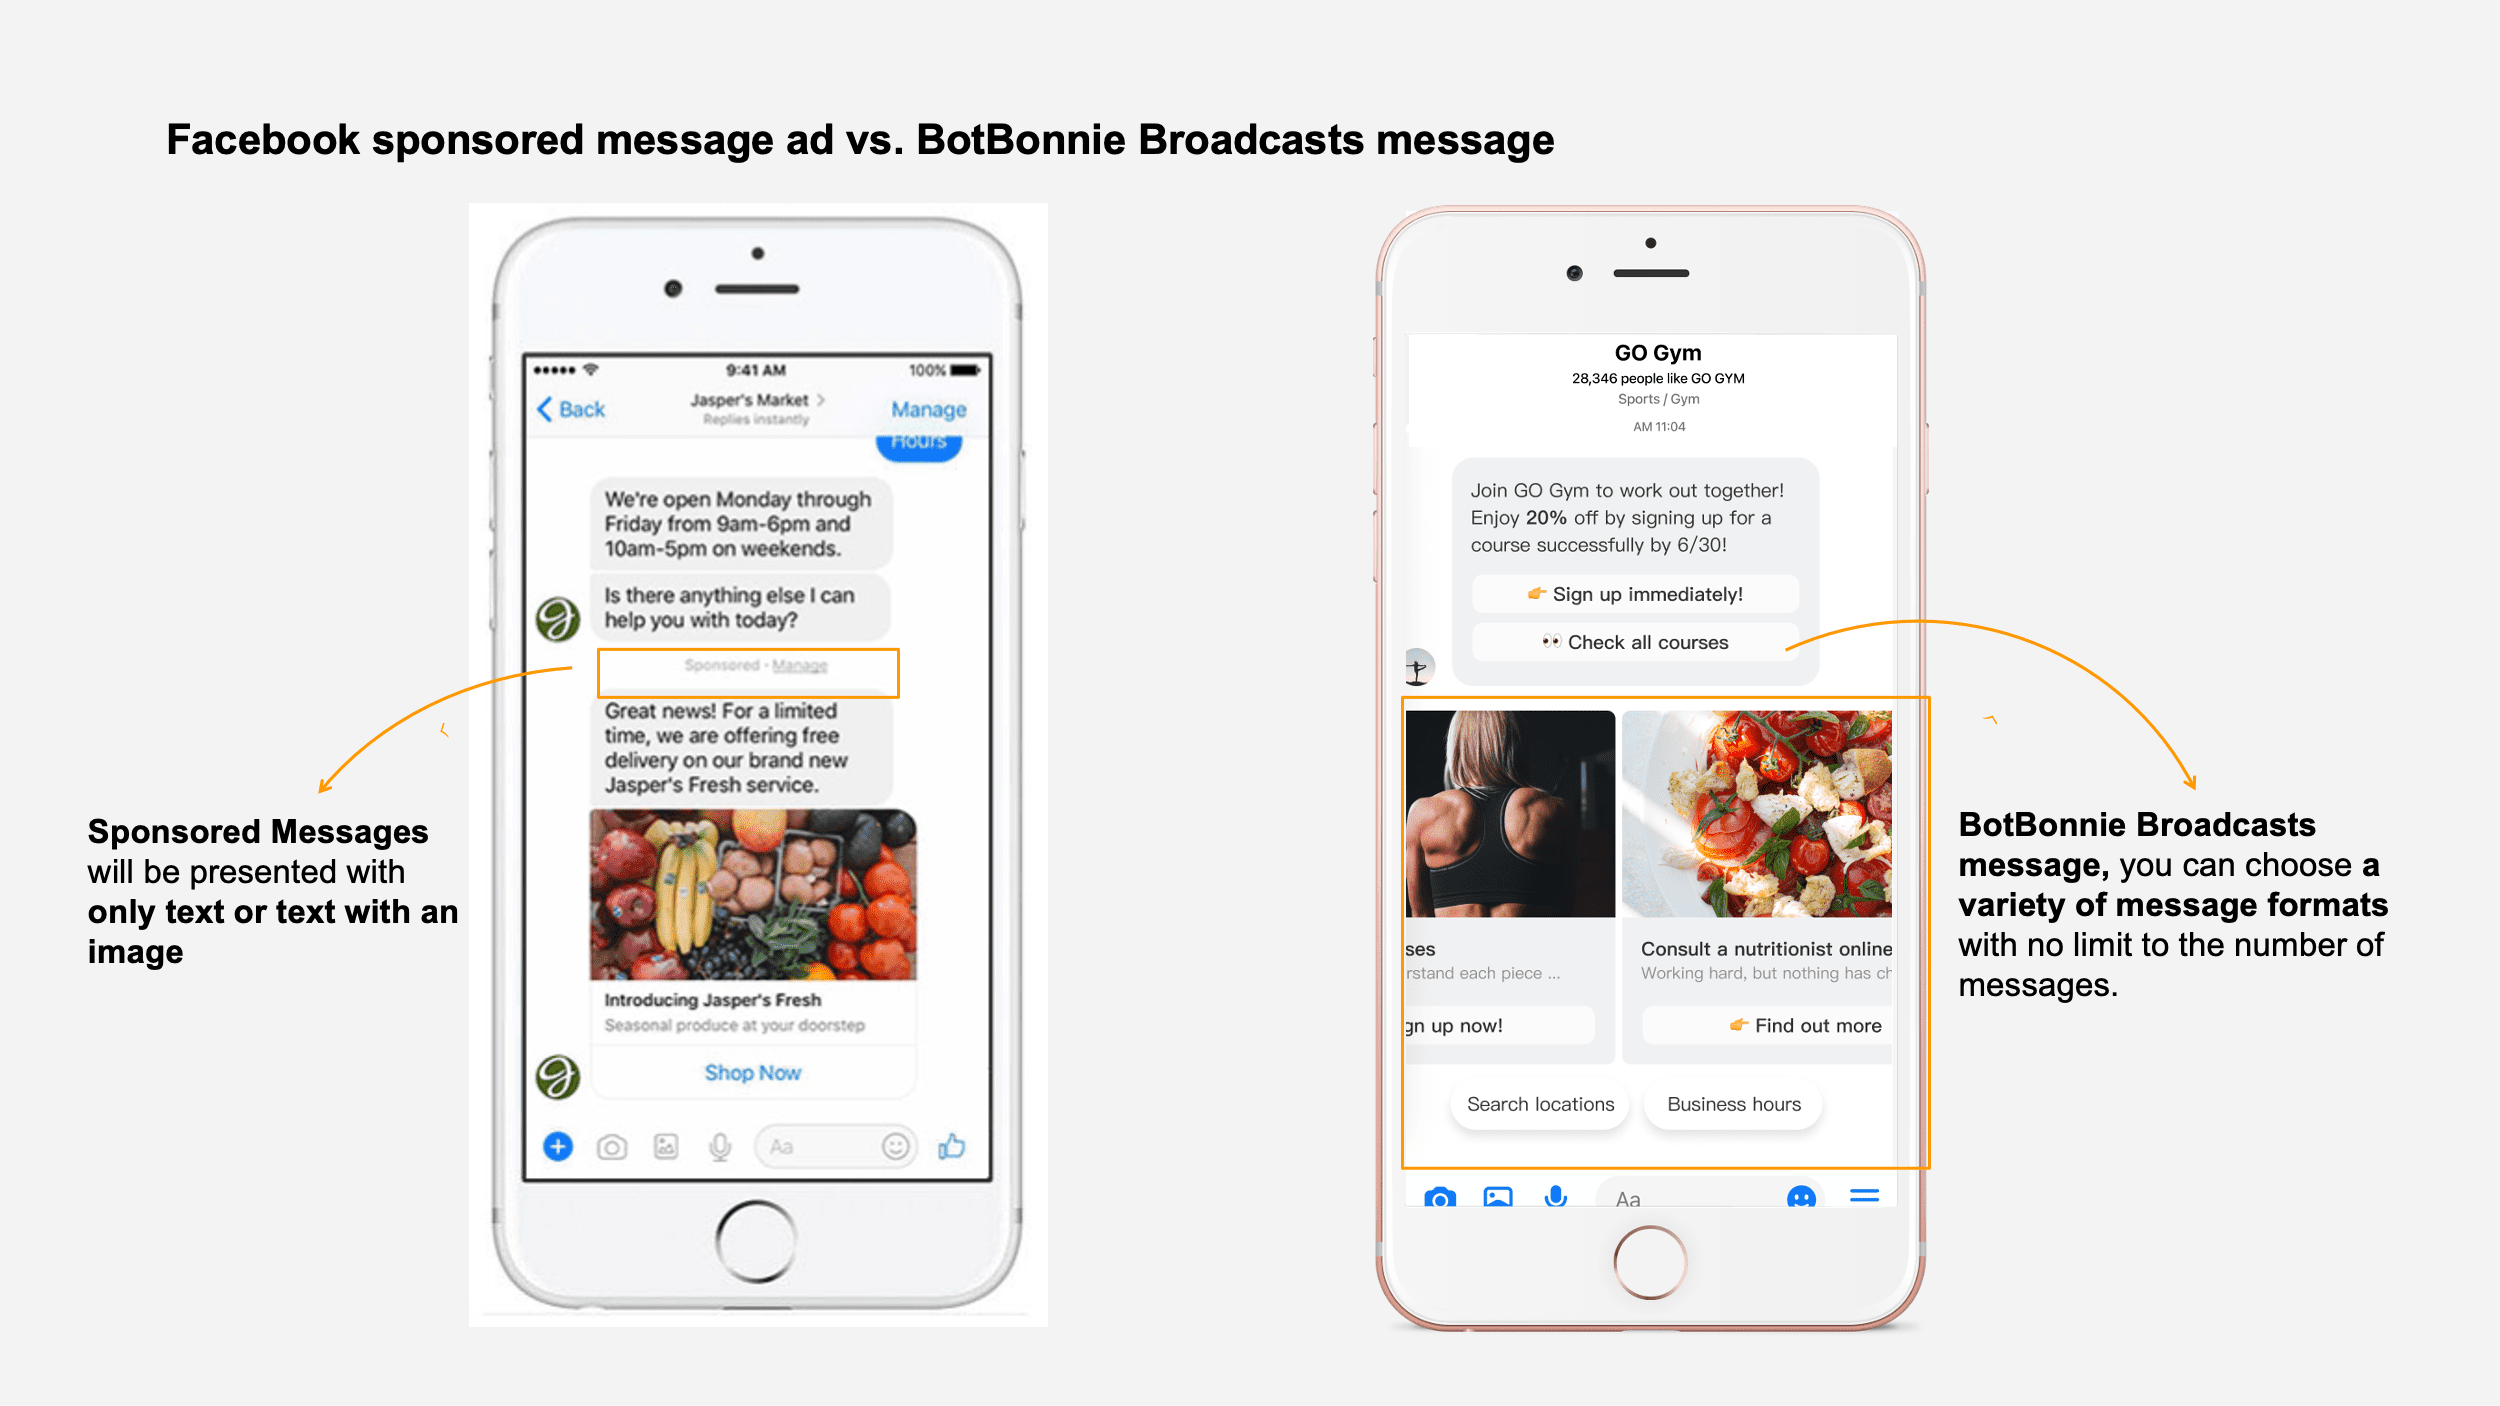 The difference between FB sponsored message with BotBonnie broadcasts